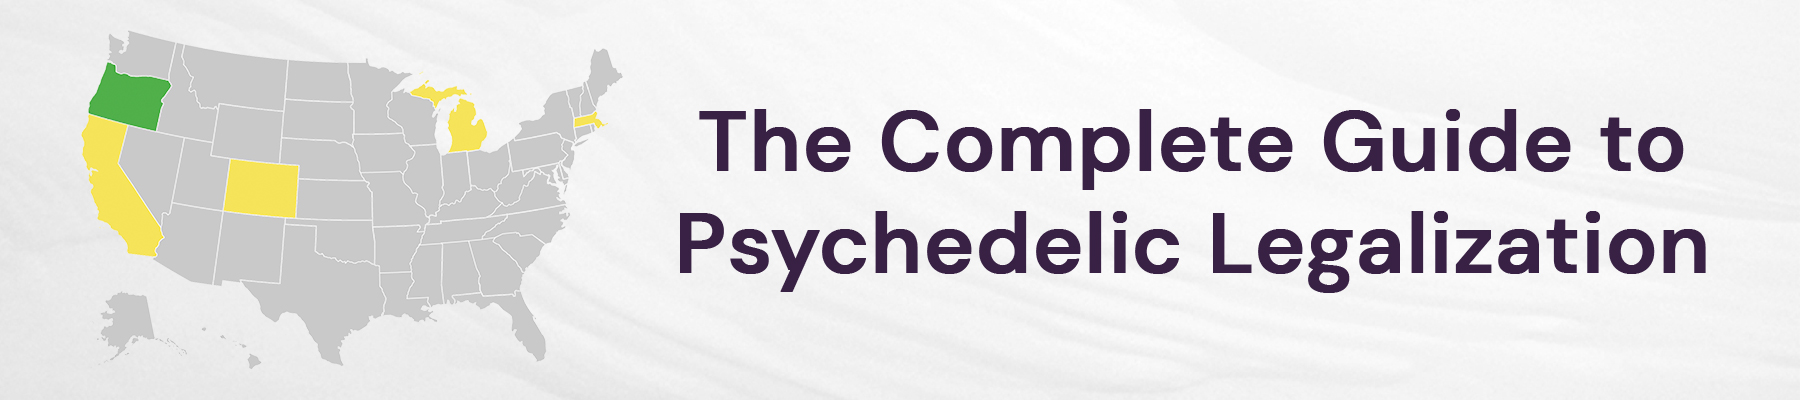 The Complete Guide to Psychedelic Legalization